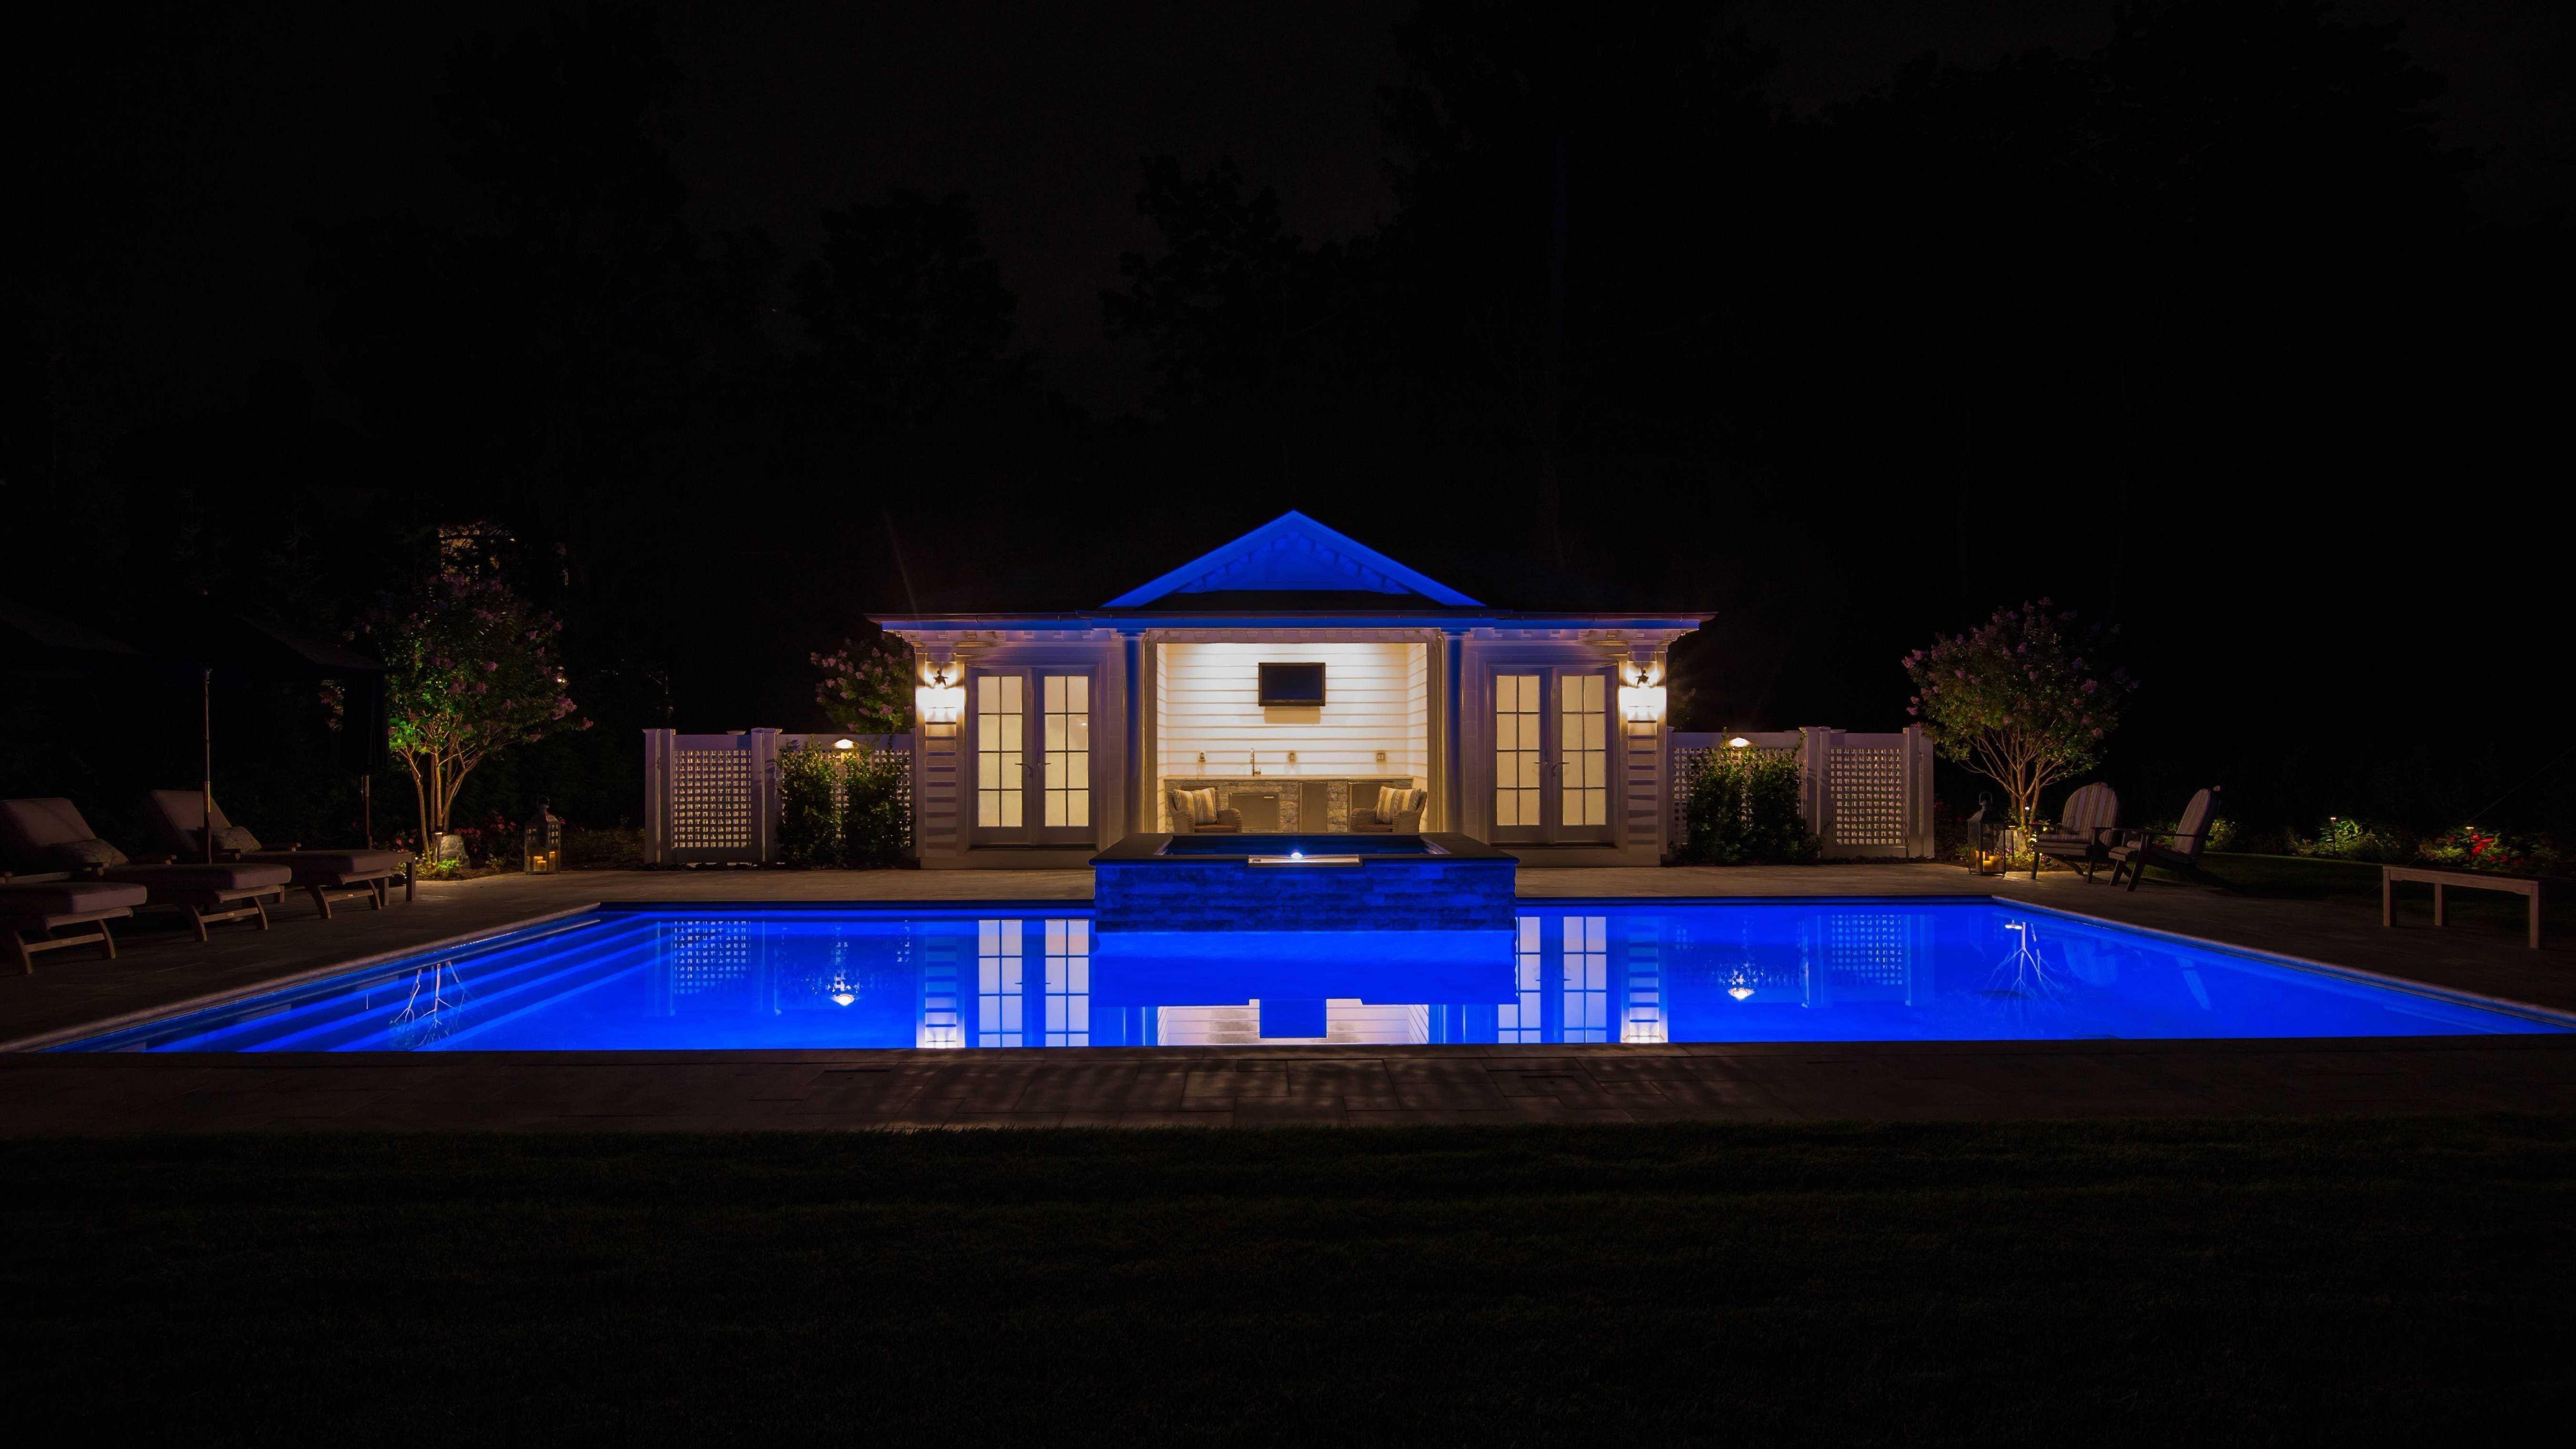 LED Lighting in Gunite Pool and Spa - Plandome Manor, Long Island NY